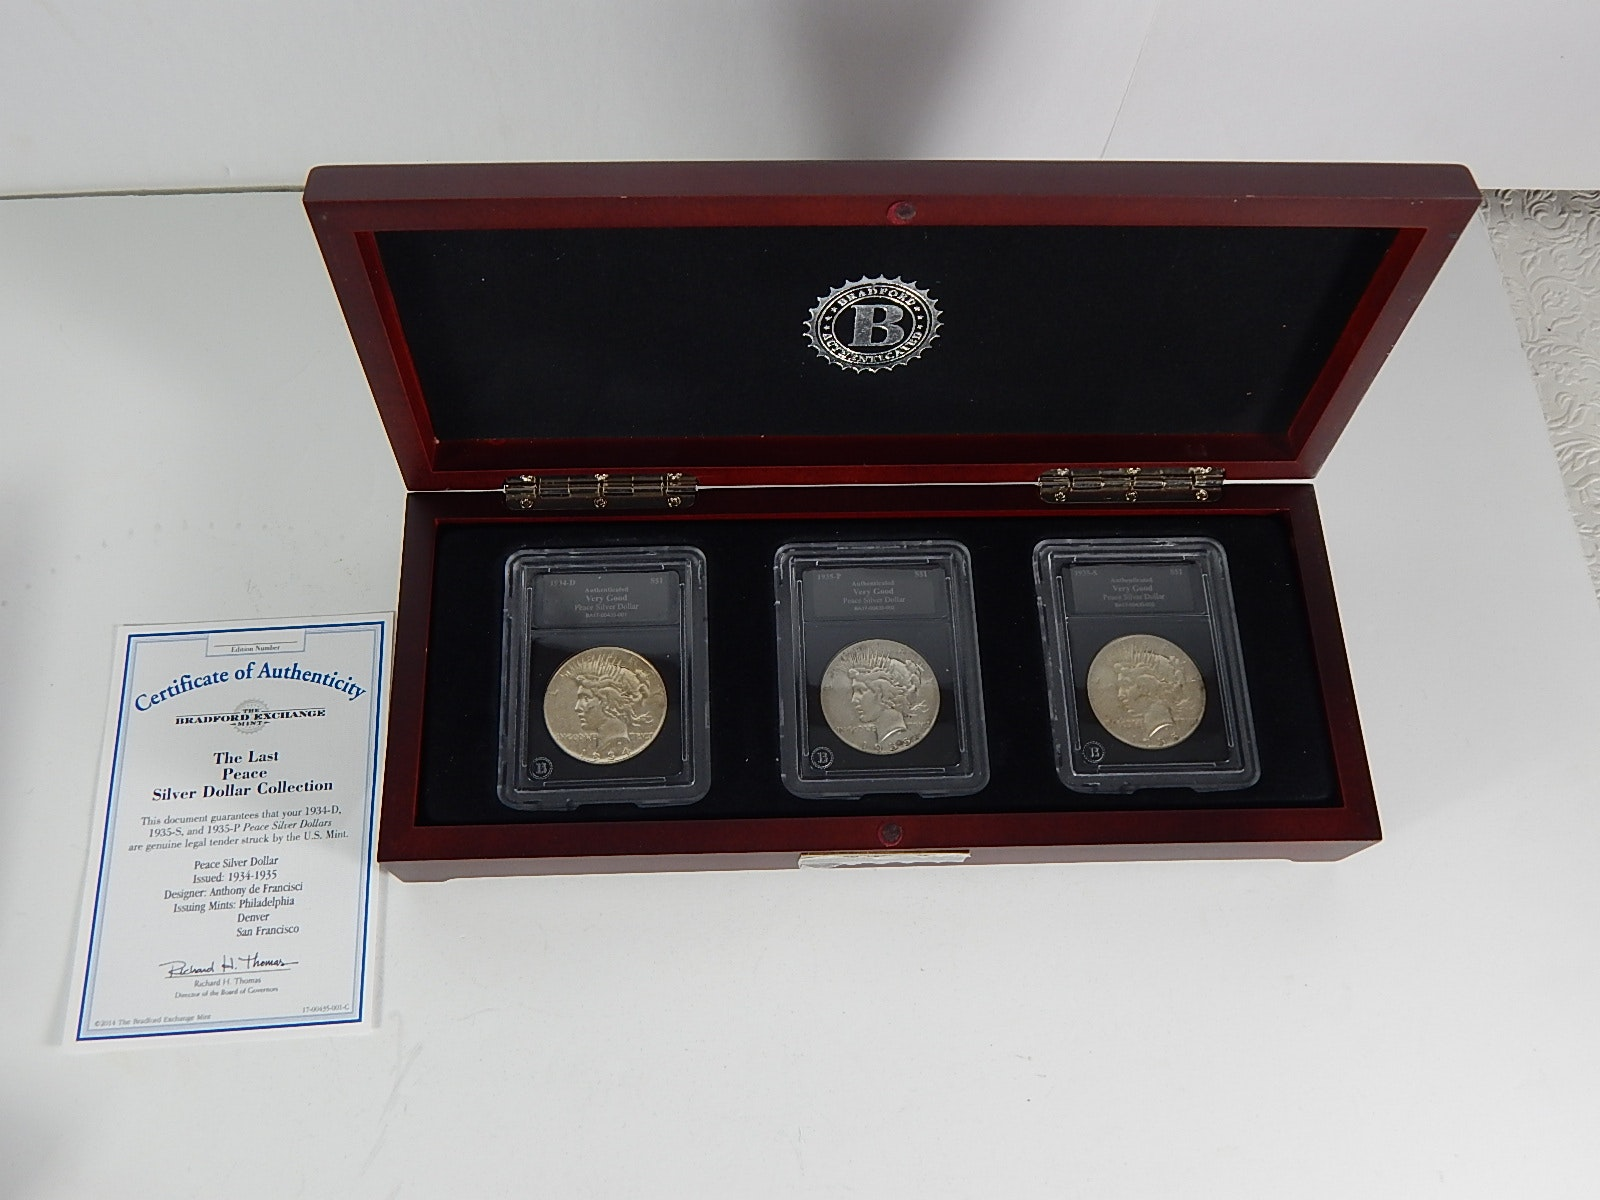 The Last Peace Silver Dollar Collection